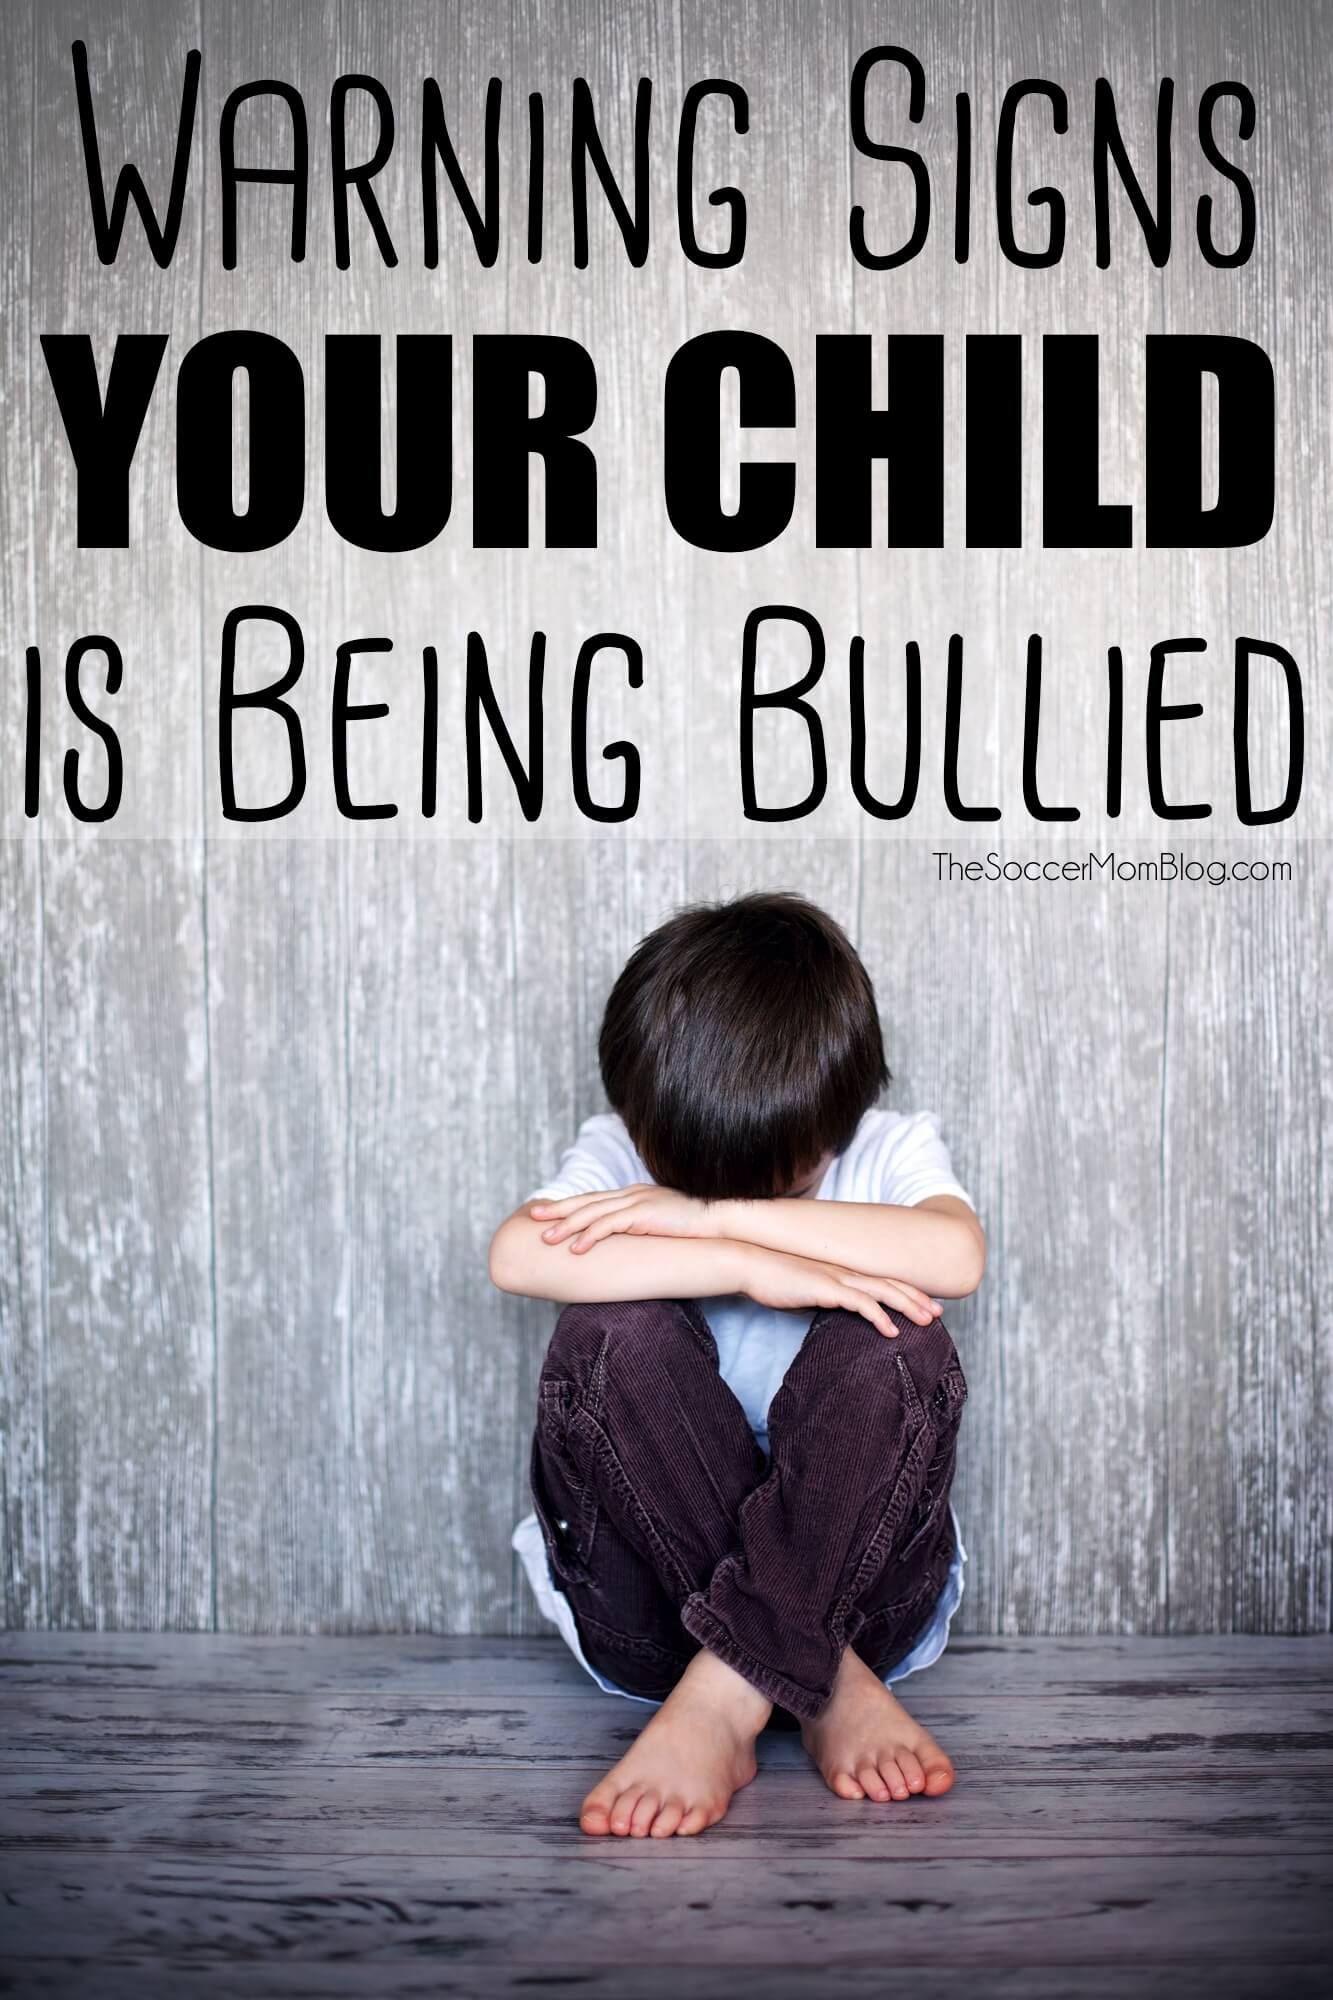 How to recognize signs of bullying in your child. What to do if you think your child is being bullied. A serious, all-too-common issue that CAN'T be ignored. TheSoccerMomBlog.com